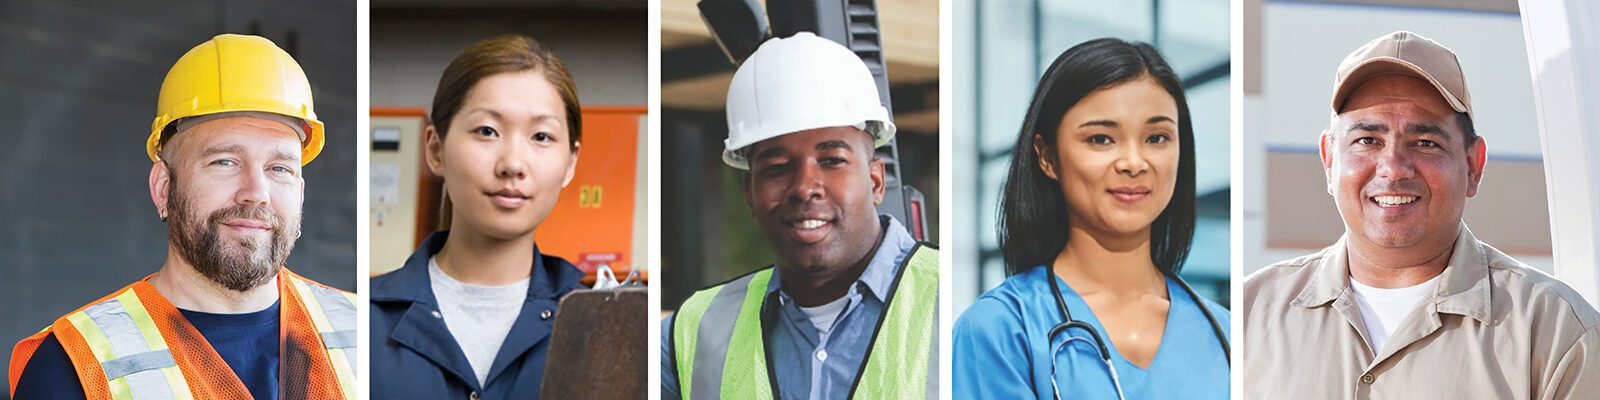 A line of headshots portraying several different careers such as nurses, construction workers, firefighters and more.